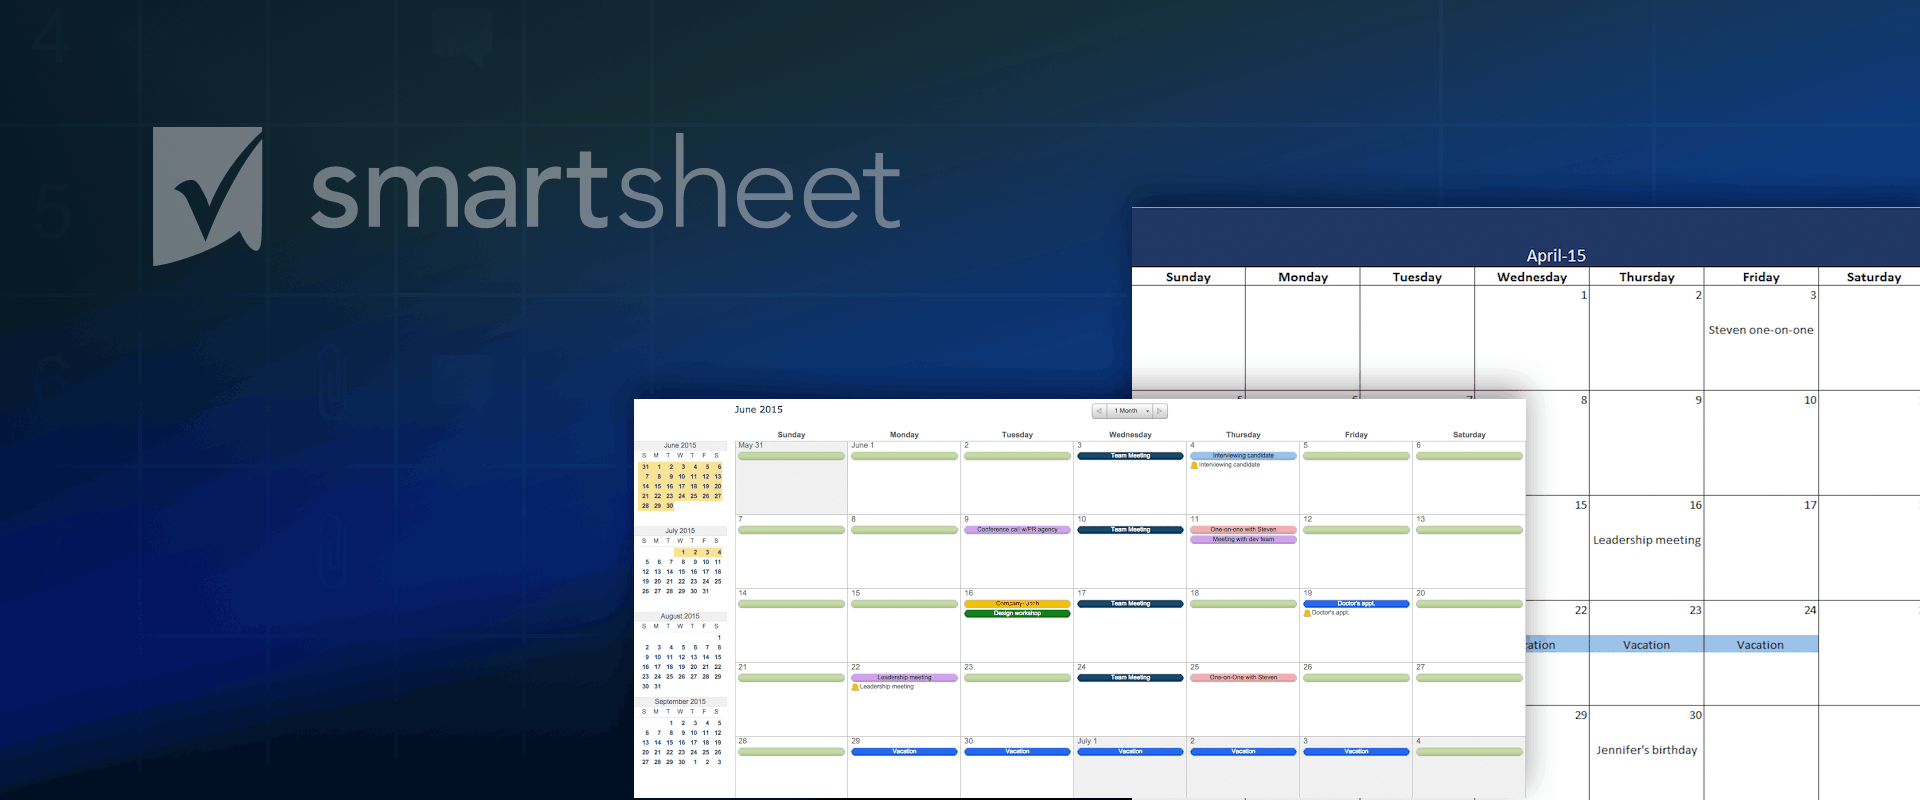 Ediblewildsus  Outstanding Make A  Calendar In Excel Includes Free Template With Remarkable Excel Template Contact List Besides Pivotal Table In Excel Furthermore Excel Conditional Formatting Blank Cells With Amazing Log Sheet Template Excel Also How To Use Excel Lookup In Addition Break Even Analysis Graph Excel And Excel Formula Max As Well As Advanced Excel Courses Online Free Additionally Income Tax Calculator Excel From Smartsheetcom With Ediblewildsus  Remarkable Make A  Calendar In Excel Includes Free Template With Amazing Excel Template Contact List Besides Pivotal Table In Excel Furthermore Excel Conditional Formatting Blank Cells And Outstanding Log Sheet Template Excel Also How To Use Excel Lookup In Addition Break Even Analysis Graph Excel From Smartsheetcom